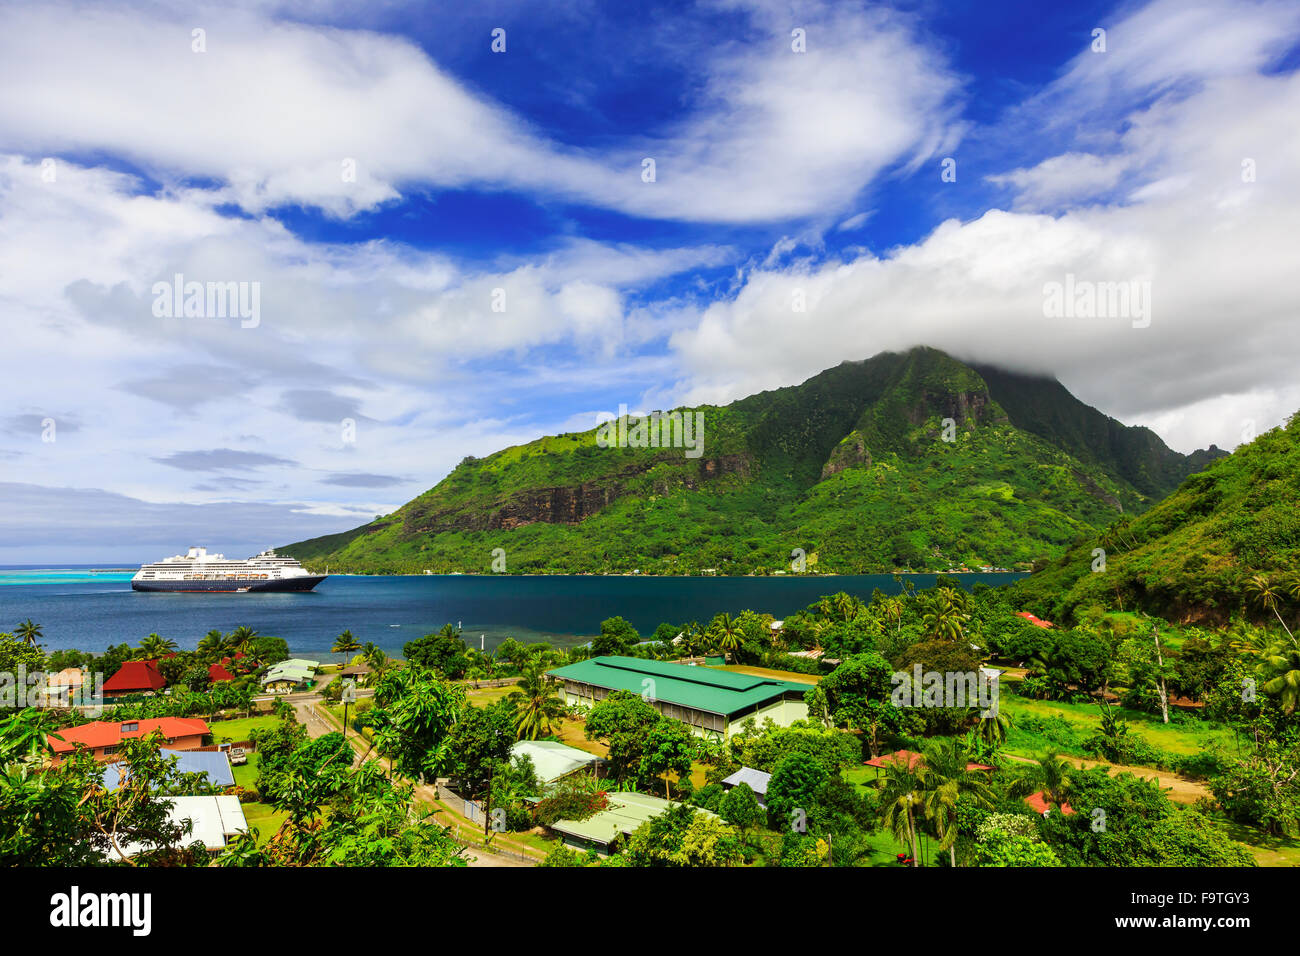 Moorea, French Polynesia. Opunoha Bay from the Magic Mountain. - Stock Image